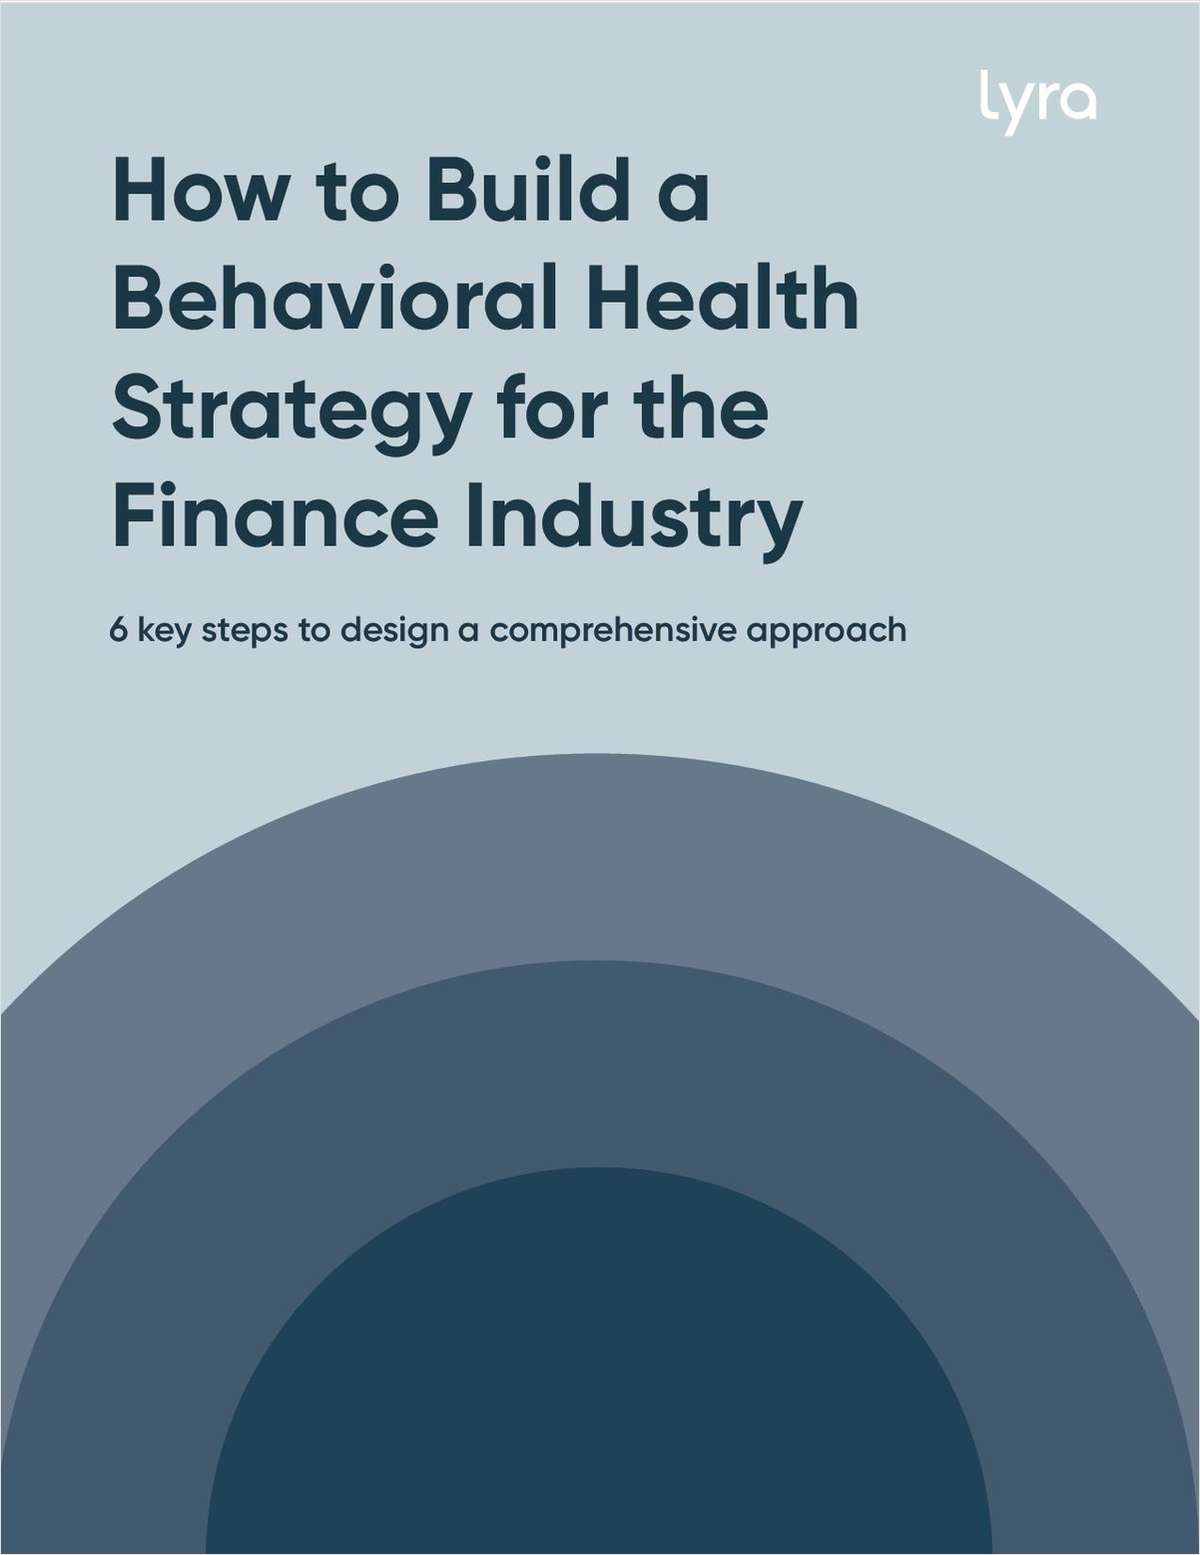 How to Build a Behavioral Health Strategy for the Finance Industry